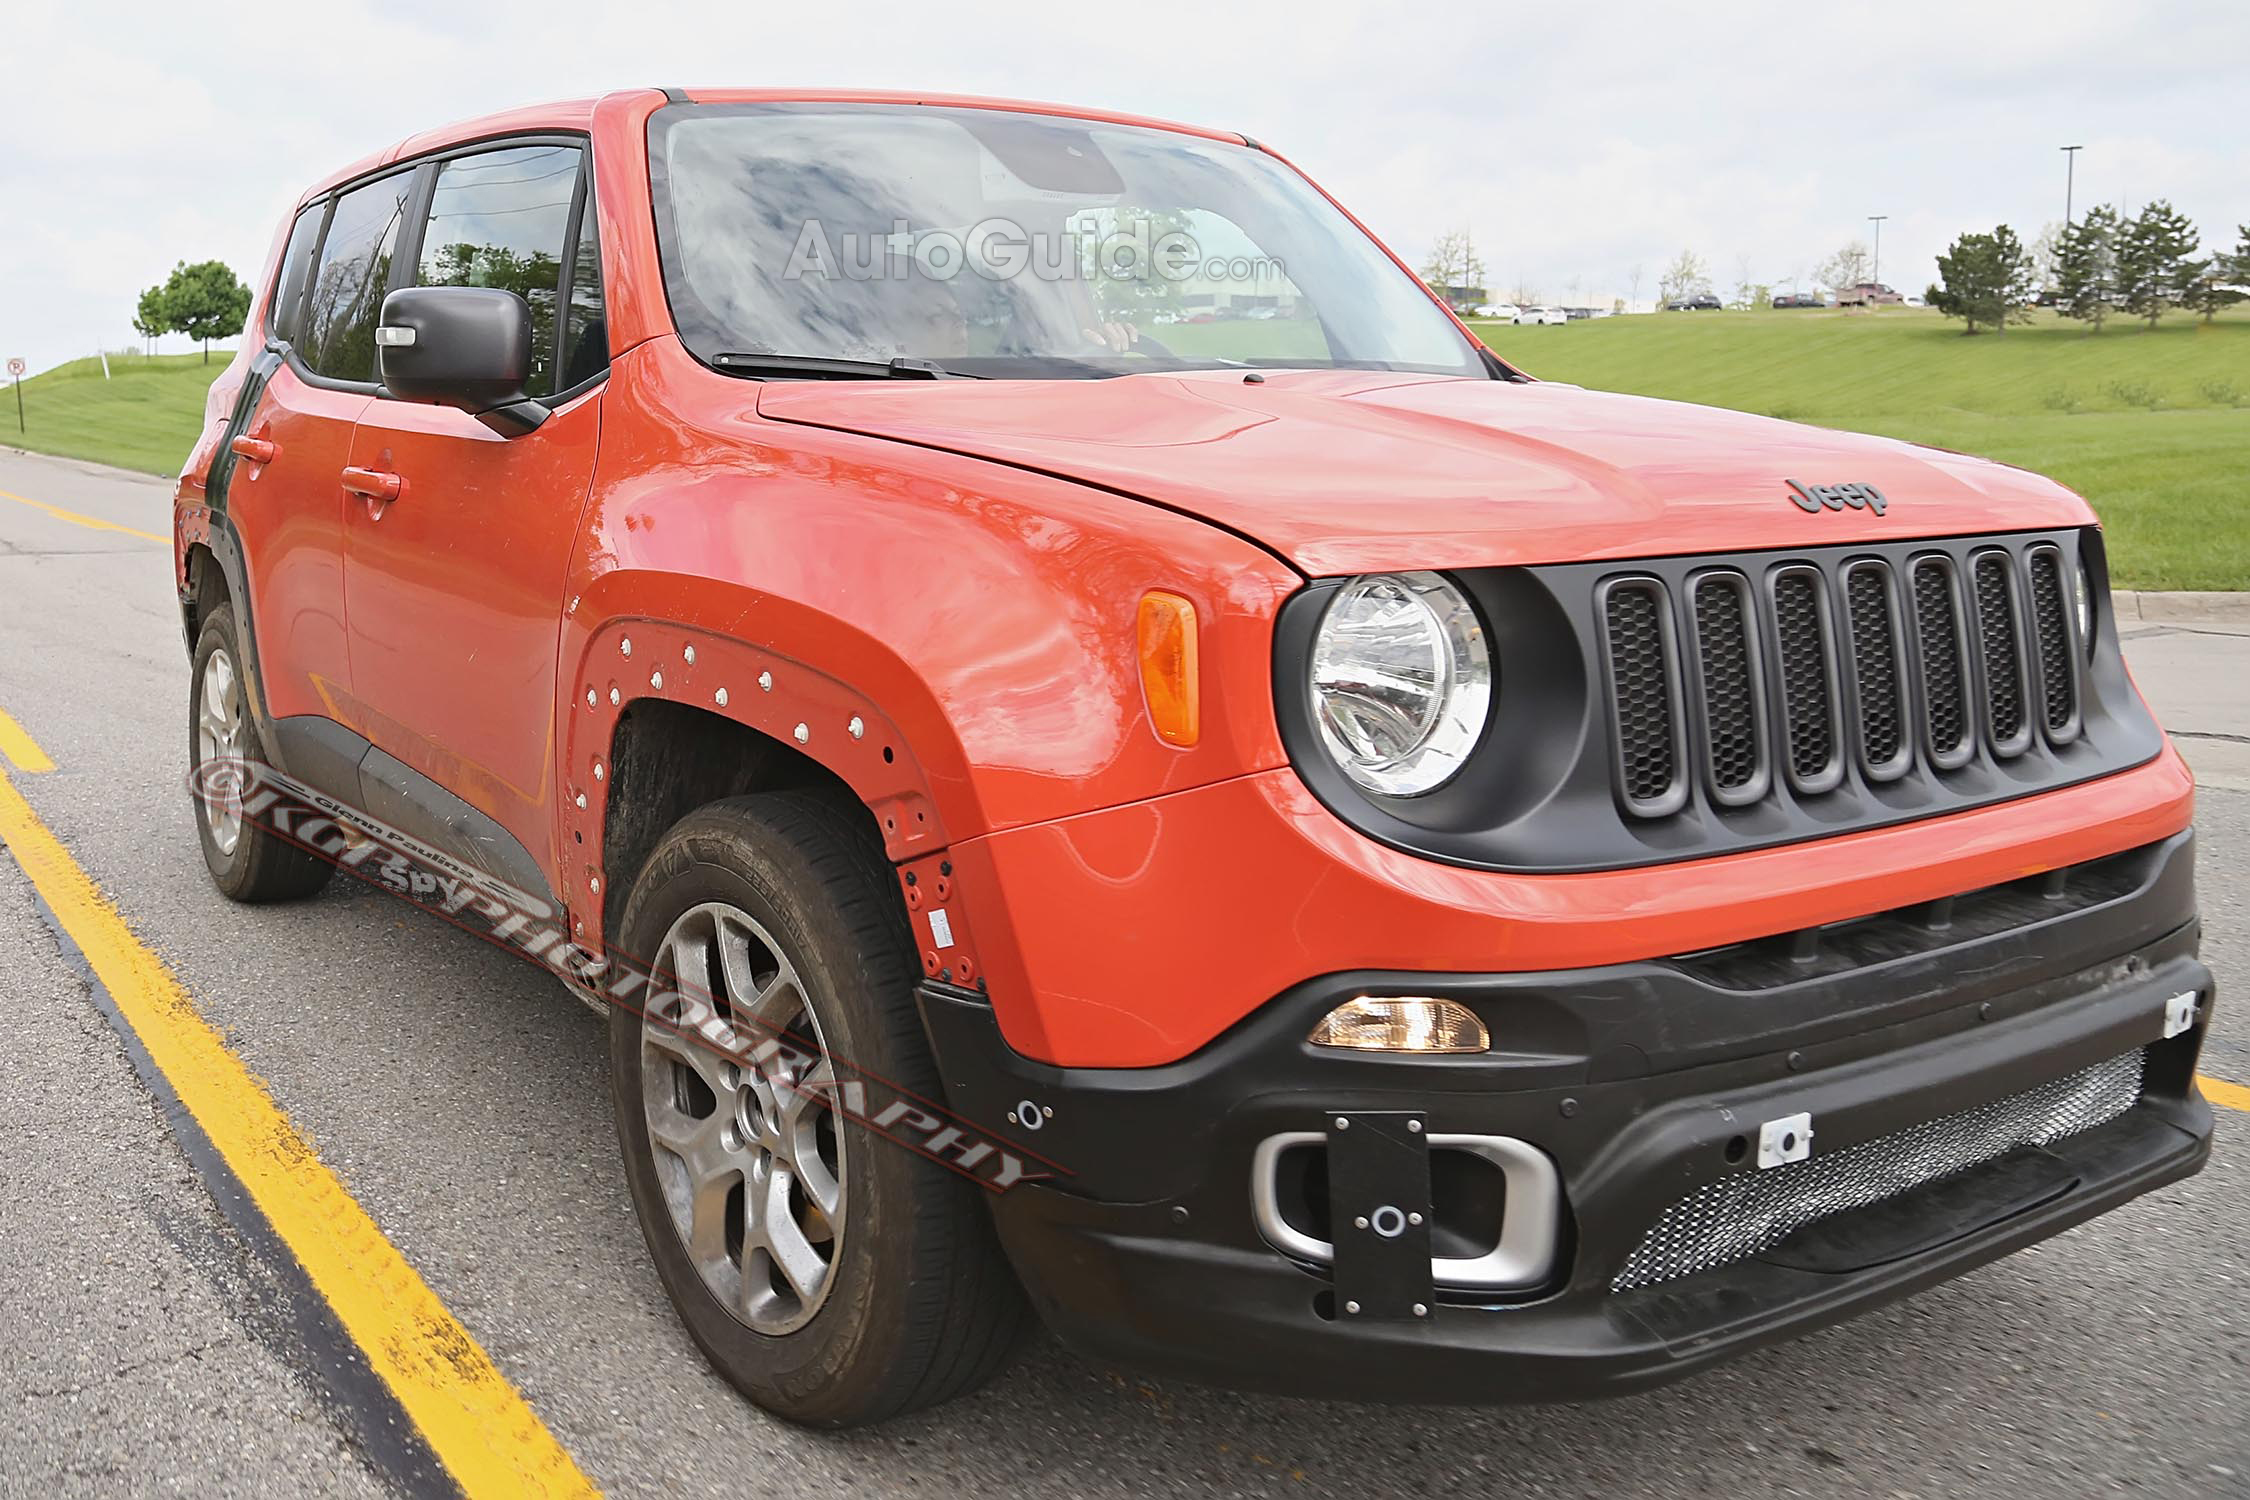 2018 Jeep Patriot Replaced With The New Compass >> 2017 Jeep Patriot Mule Spied Testing With Renegade Body